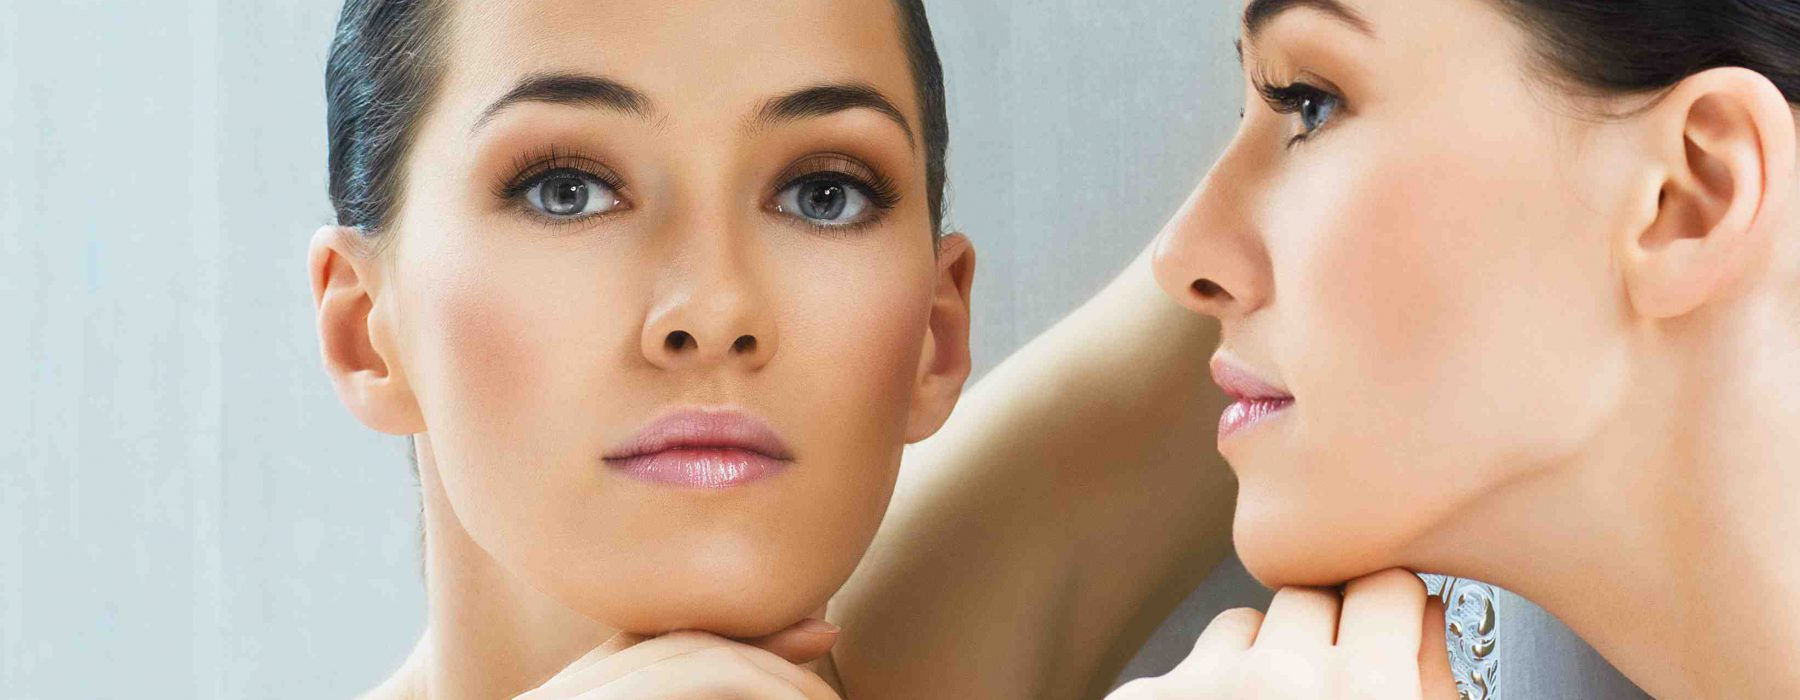 Facial rejuvenation: surgical and not surgical technologies